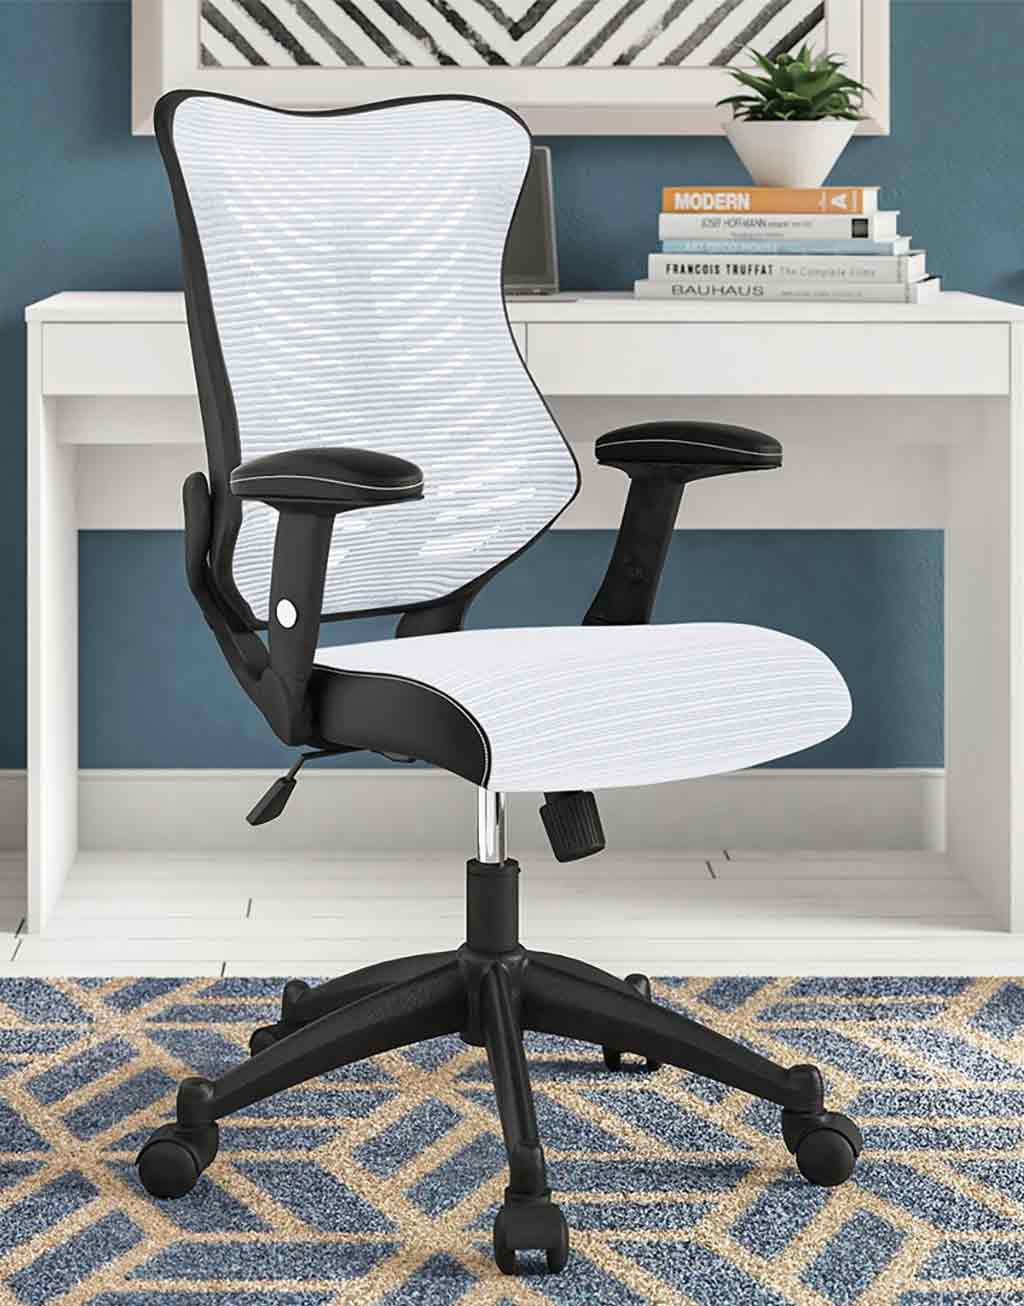 Best Chairs for Studying 2